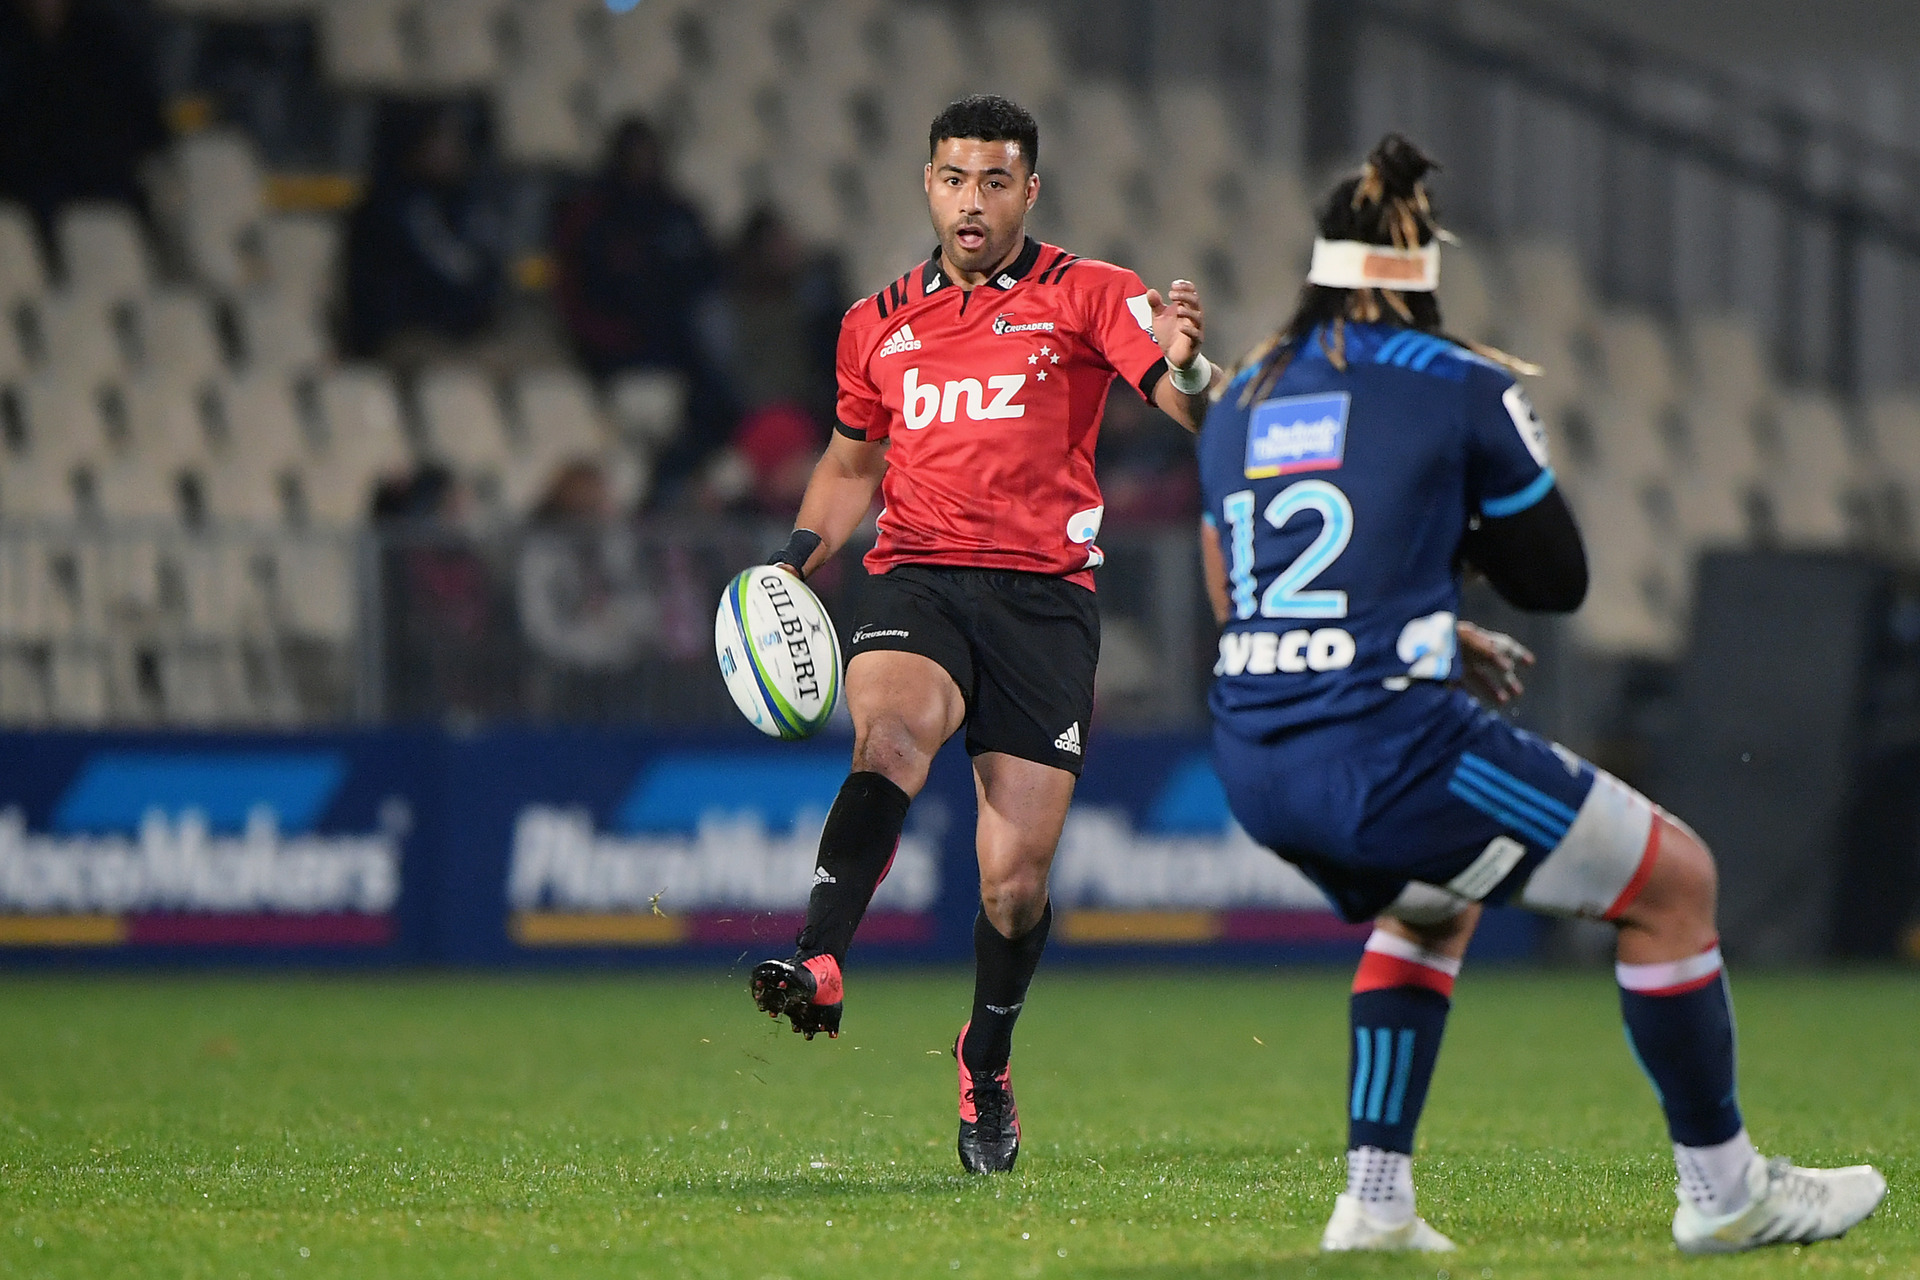 Super Rugby: Winners and losers from the latest round